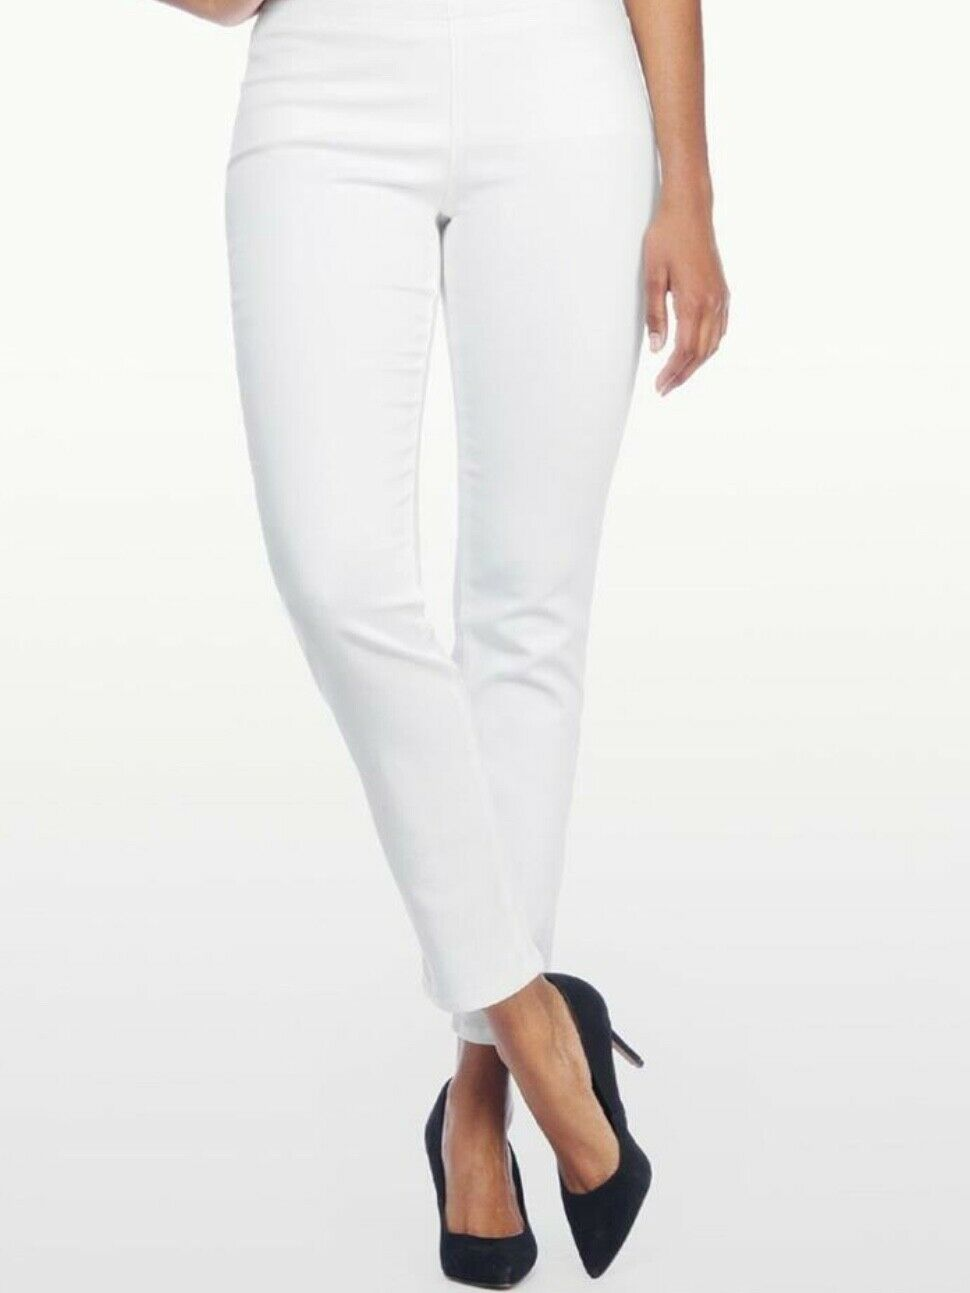 NYDJ ALINA PULL ON STRETCH ANKLE JEANS ENDLESS WHITE SIZE 12P